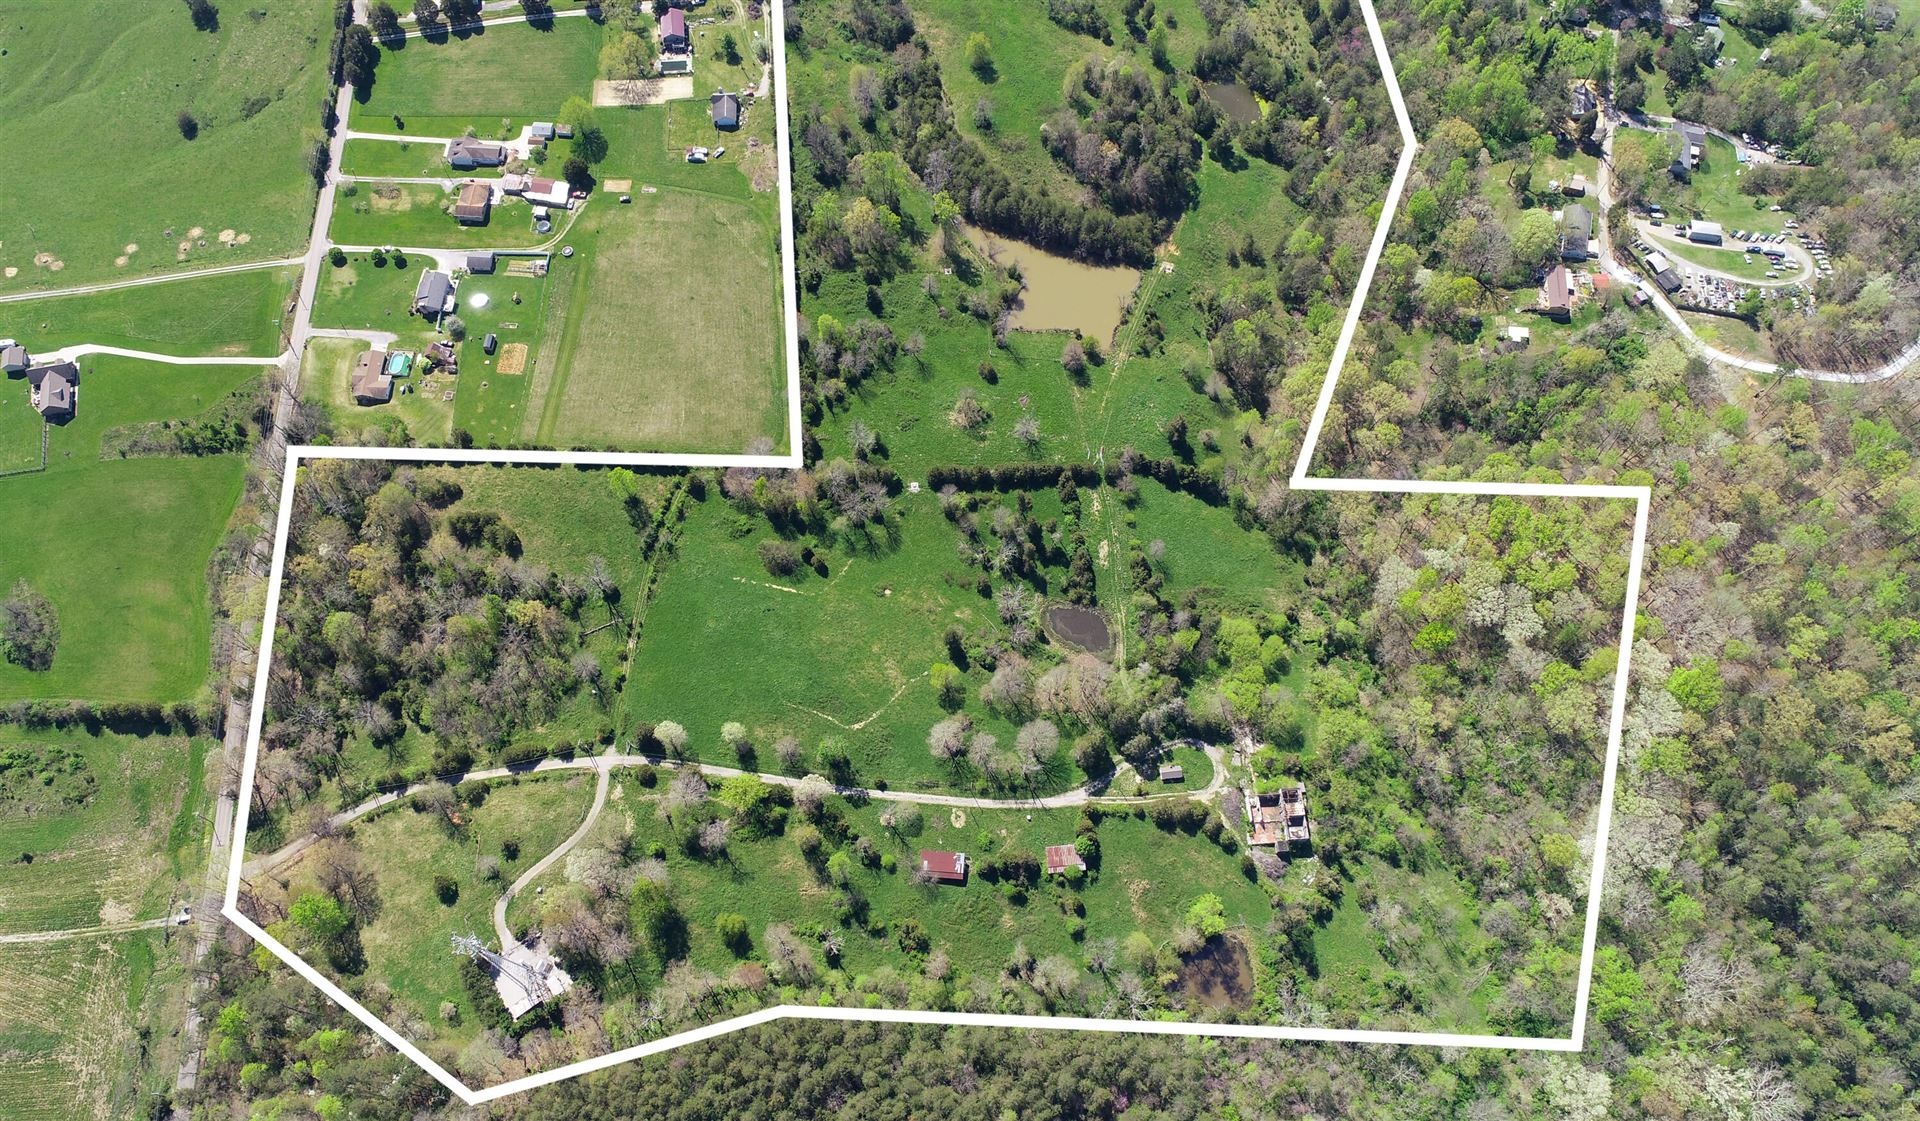 Photo of 0 Wise Springs Rd, Knoxville, TN 37918 (MLS # 1162557)